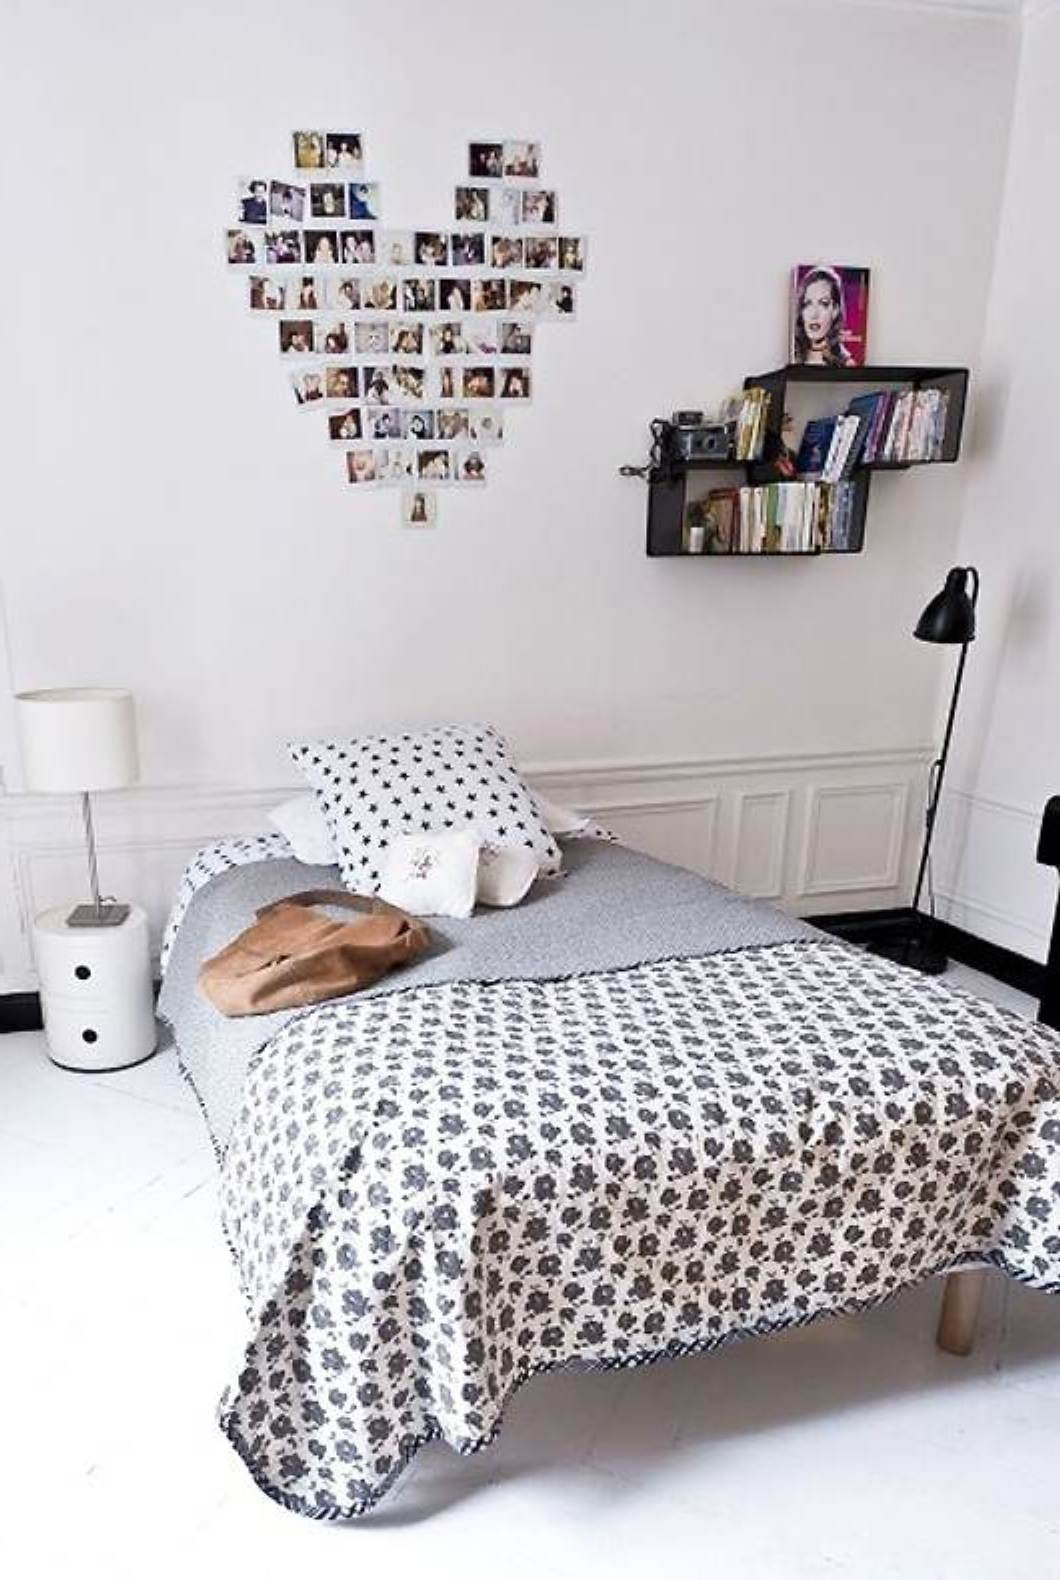 Simple Room Wall Decoration Ideas For Girls Easy Bedroom Decorating Ideas Bedroom Design Idea